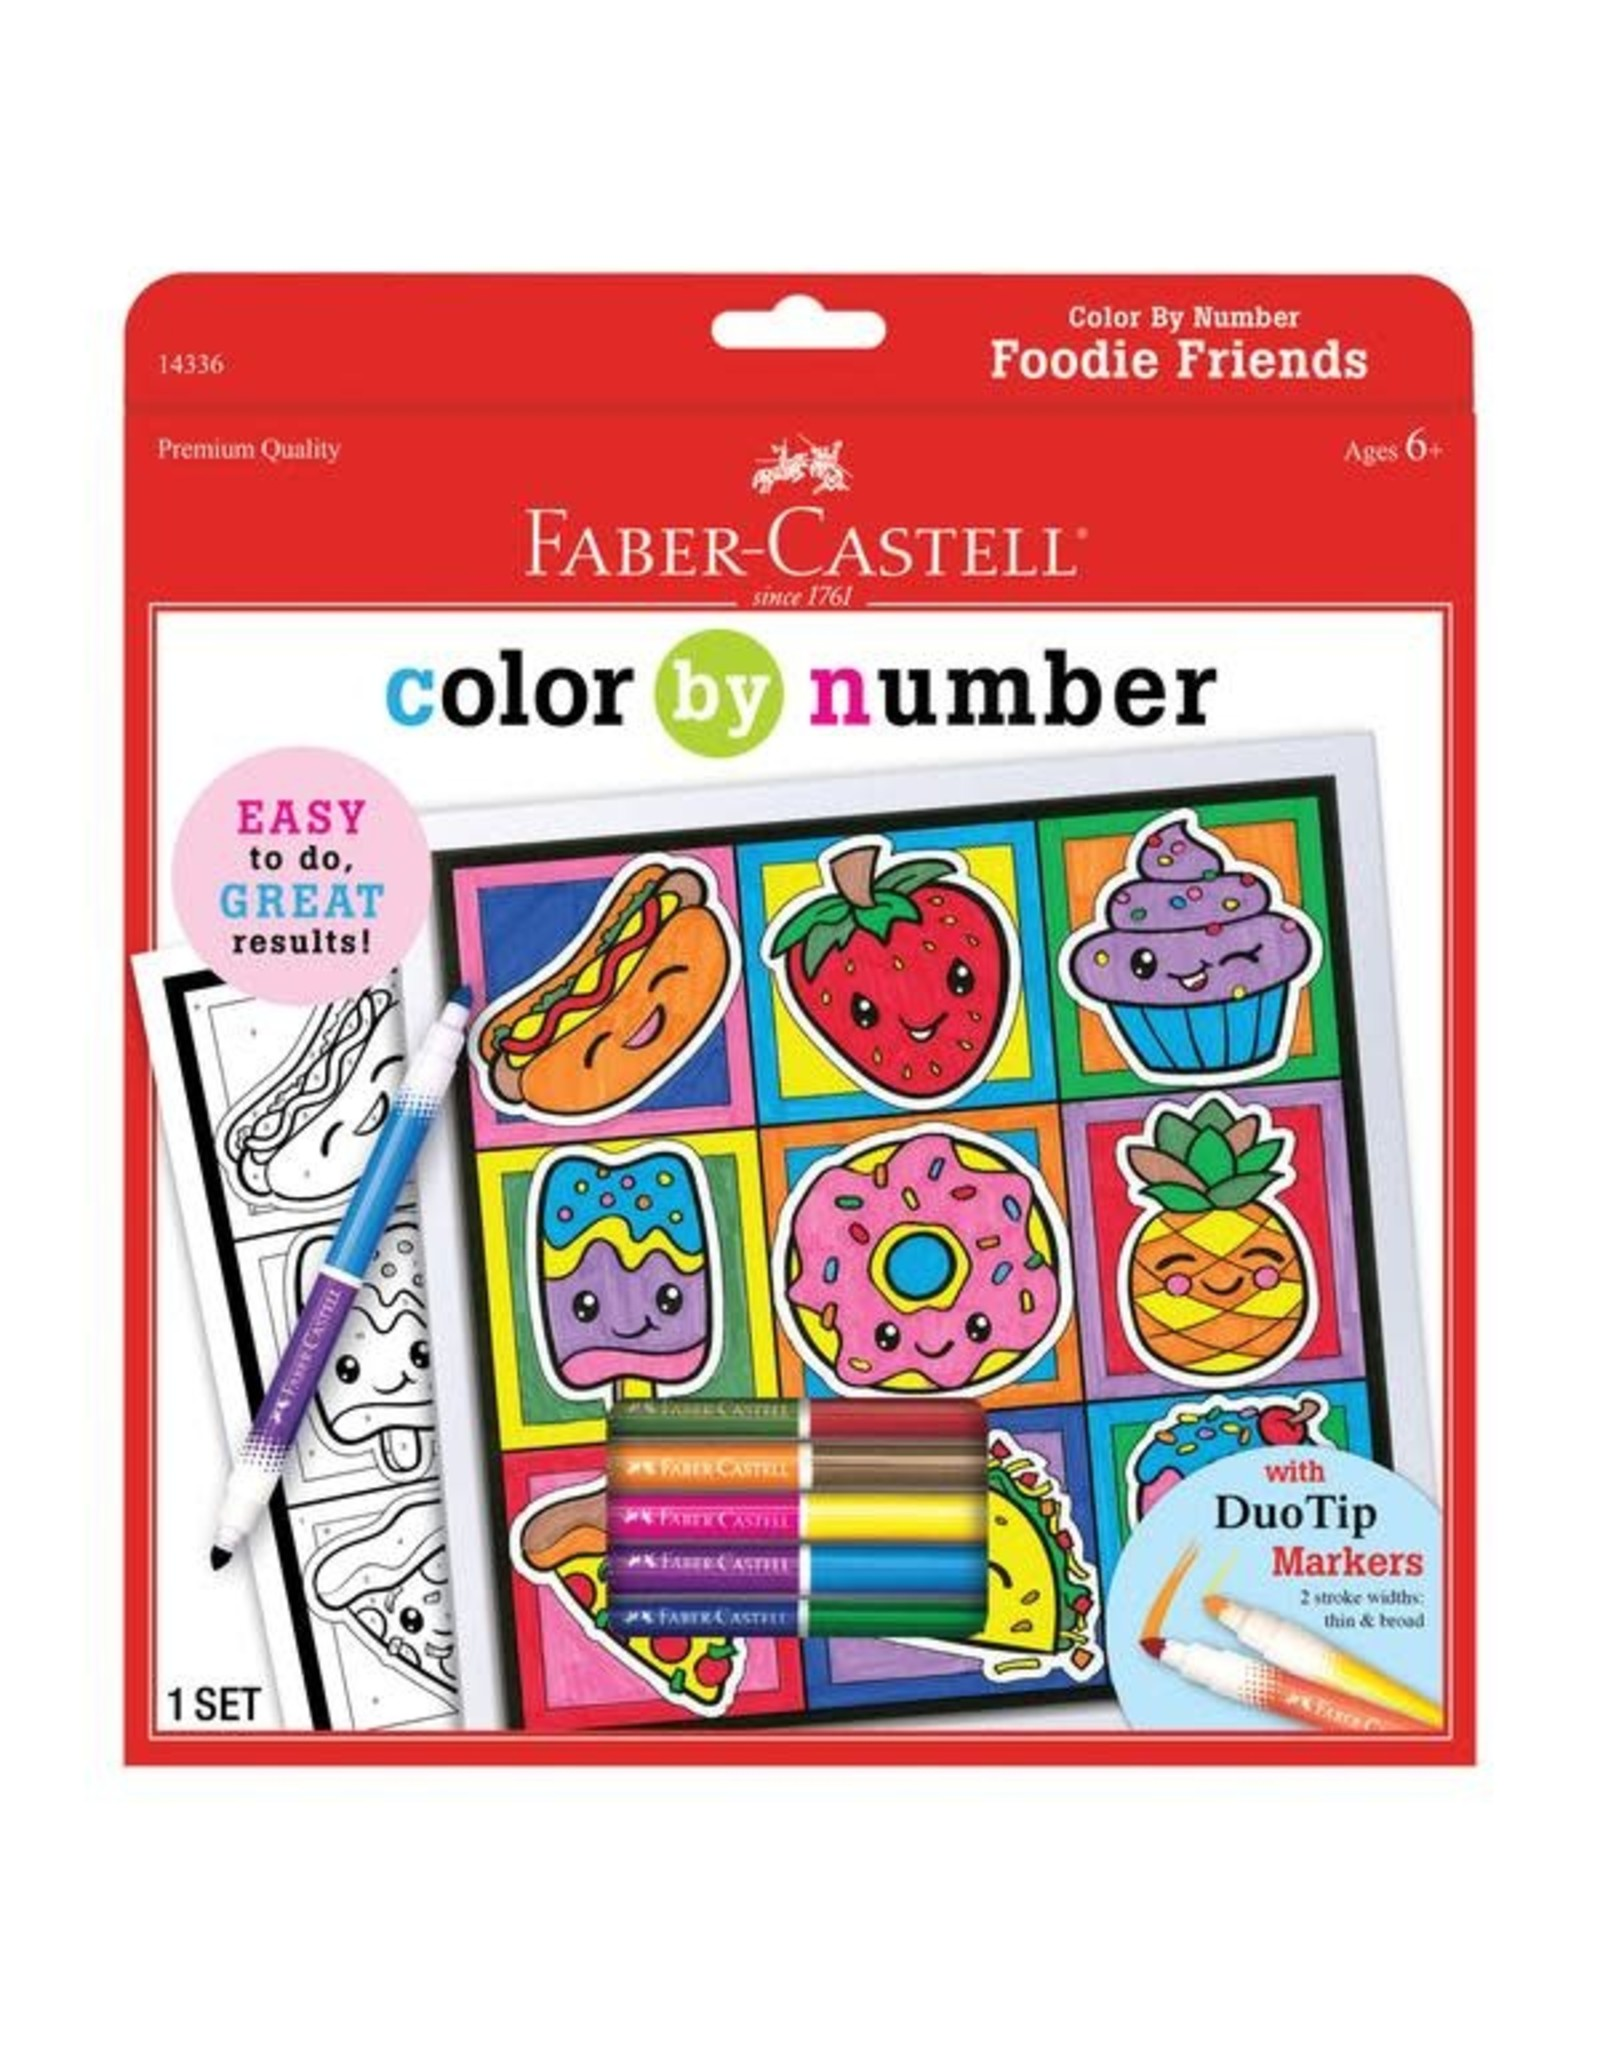 Faber Castell Color By Number Foodie Friends